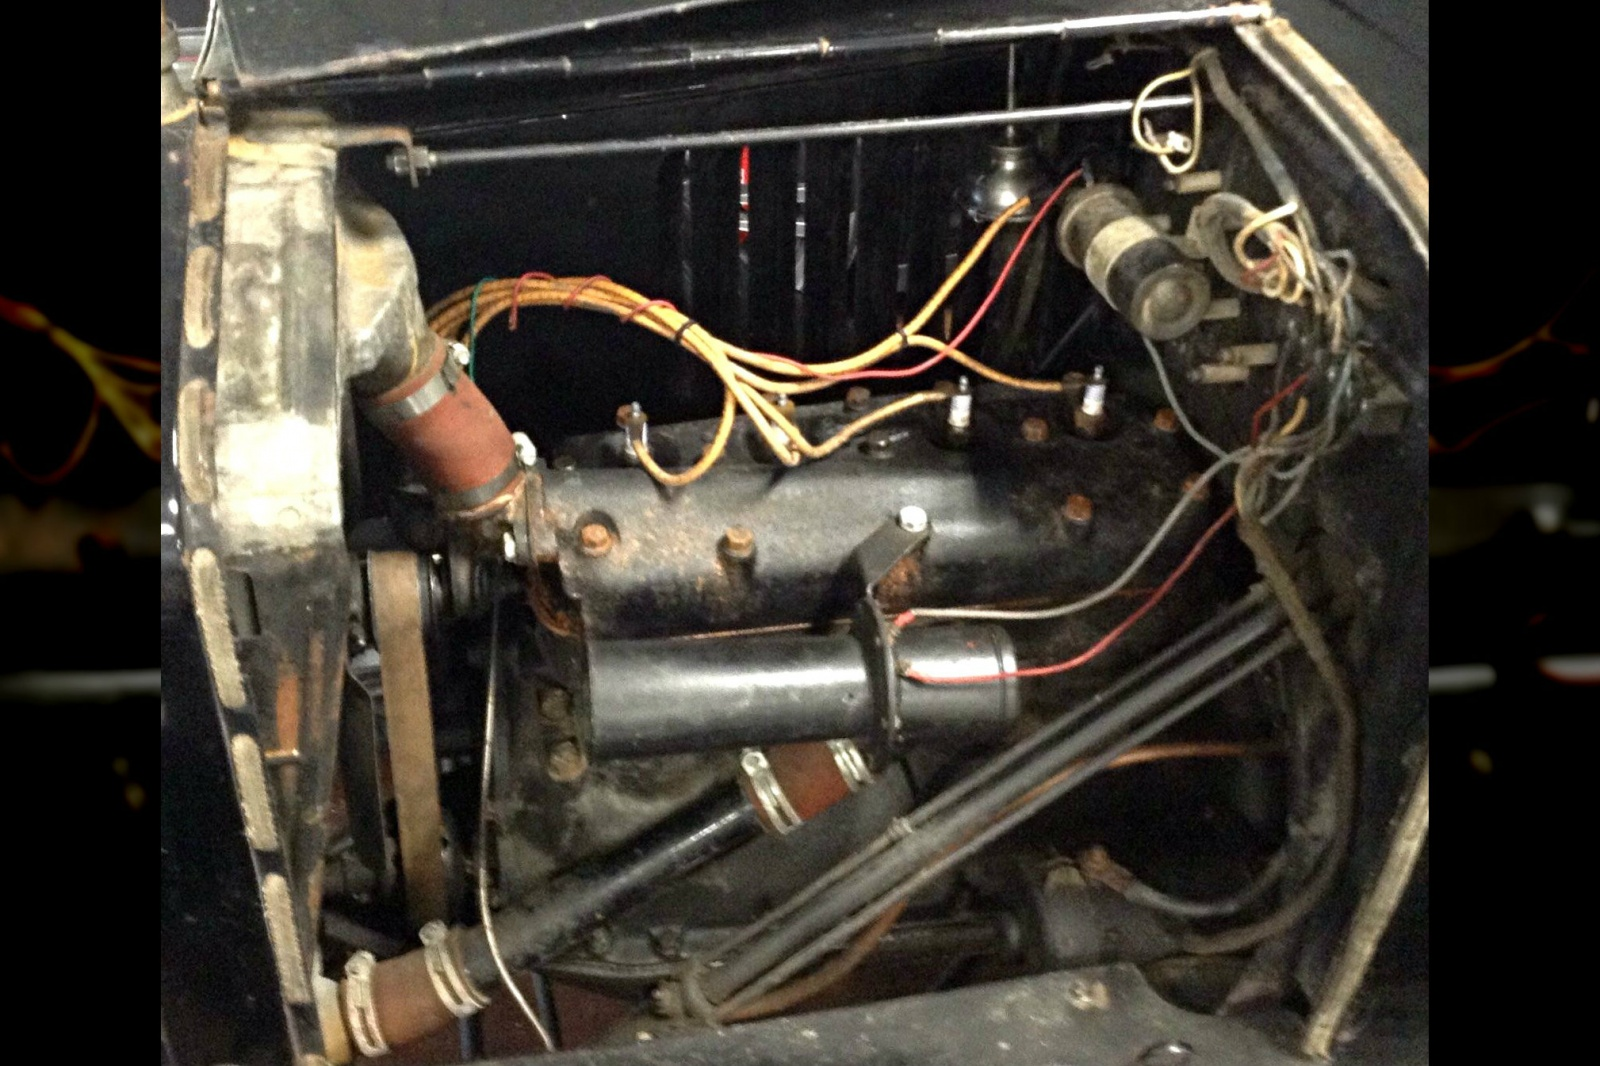 Topless Lizzy 1923 Ford Model T Roadster Wiring Simplistic And Reliable The 4 Cylinder Engine Appears To Have Been Rebuilt At Some Point As Seller Explains Fresh Gaskets Can Be Seen On